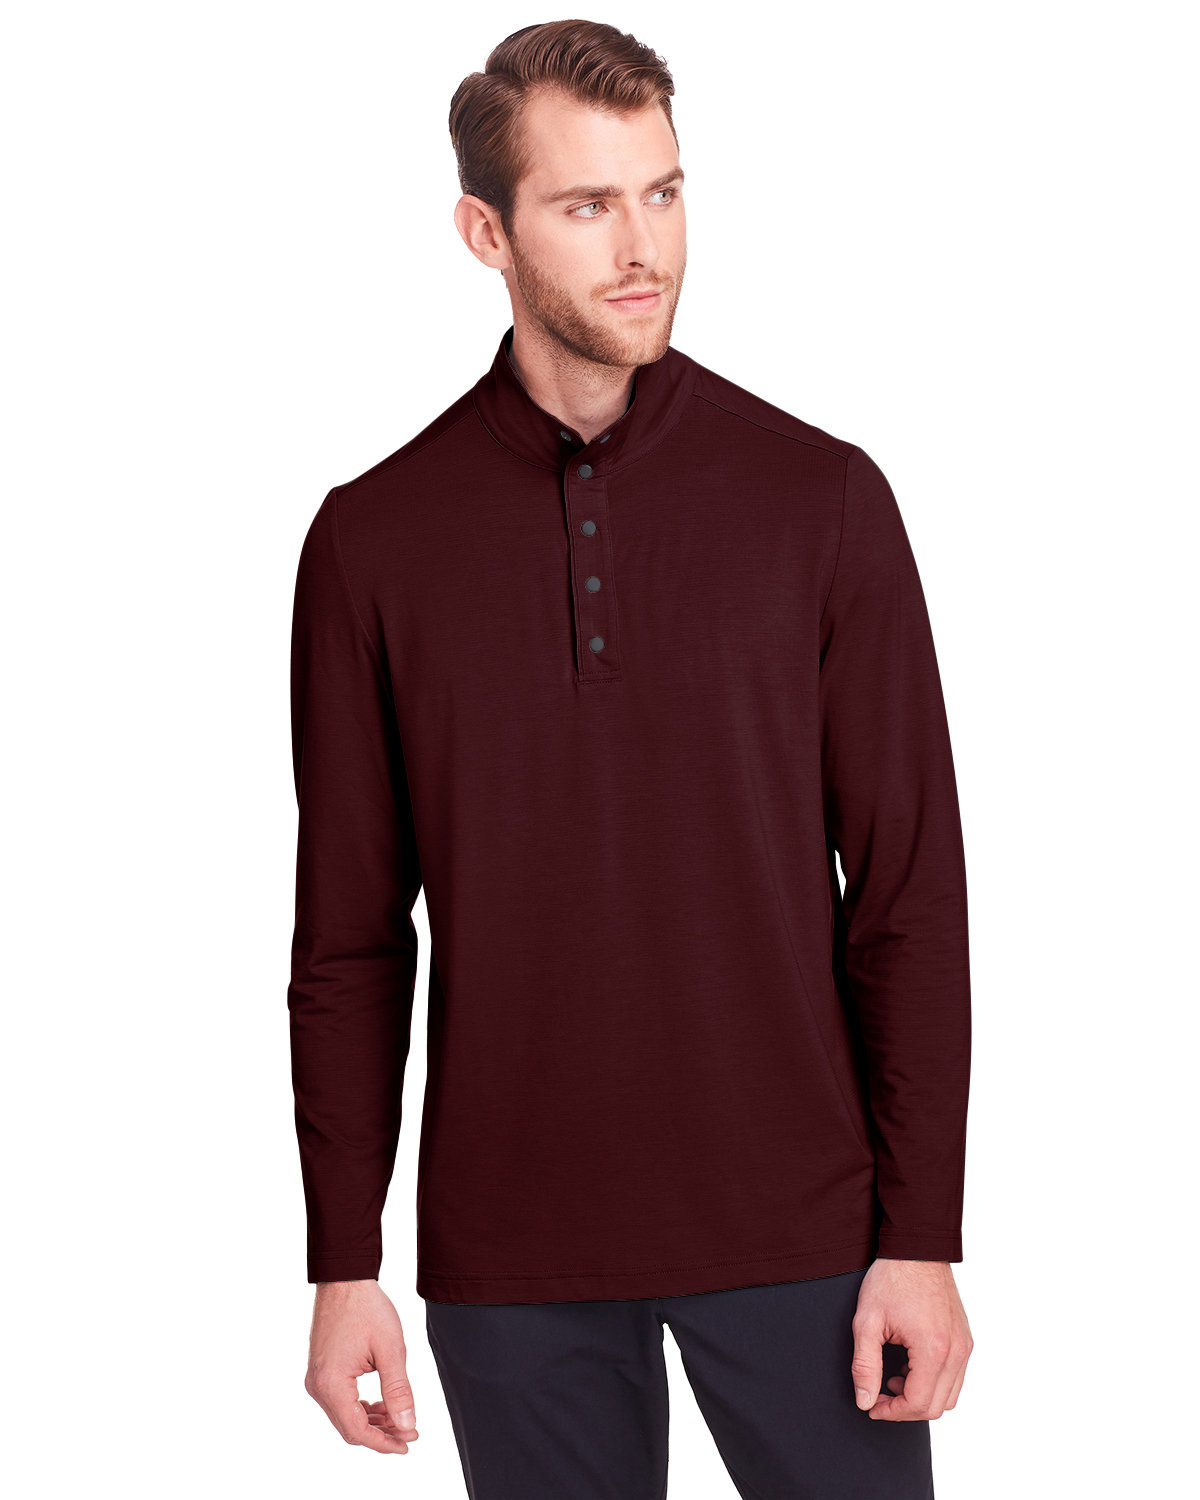 North End Men's Jaq Snap-Up Stretch Performance Pullover BURGUNDY